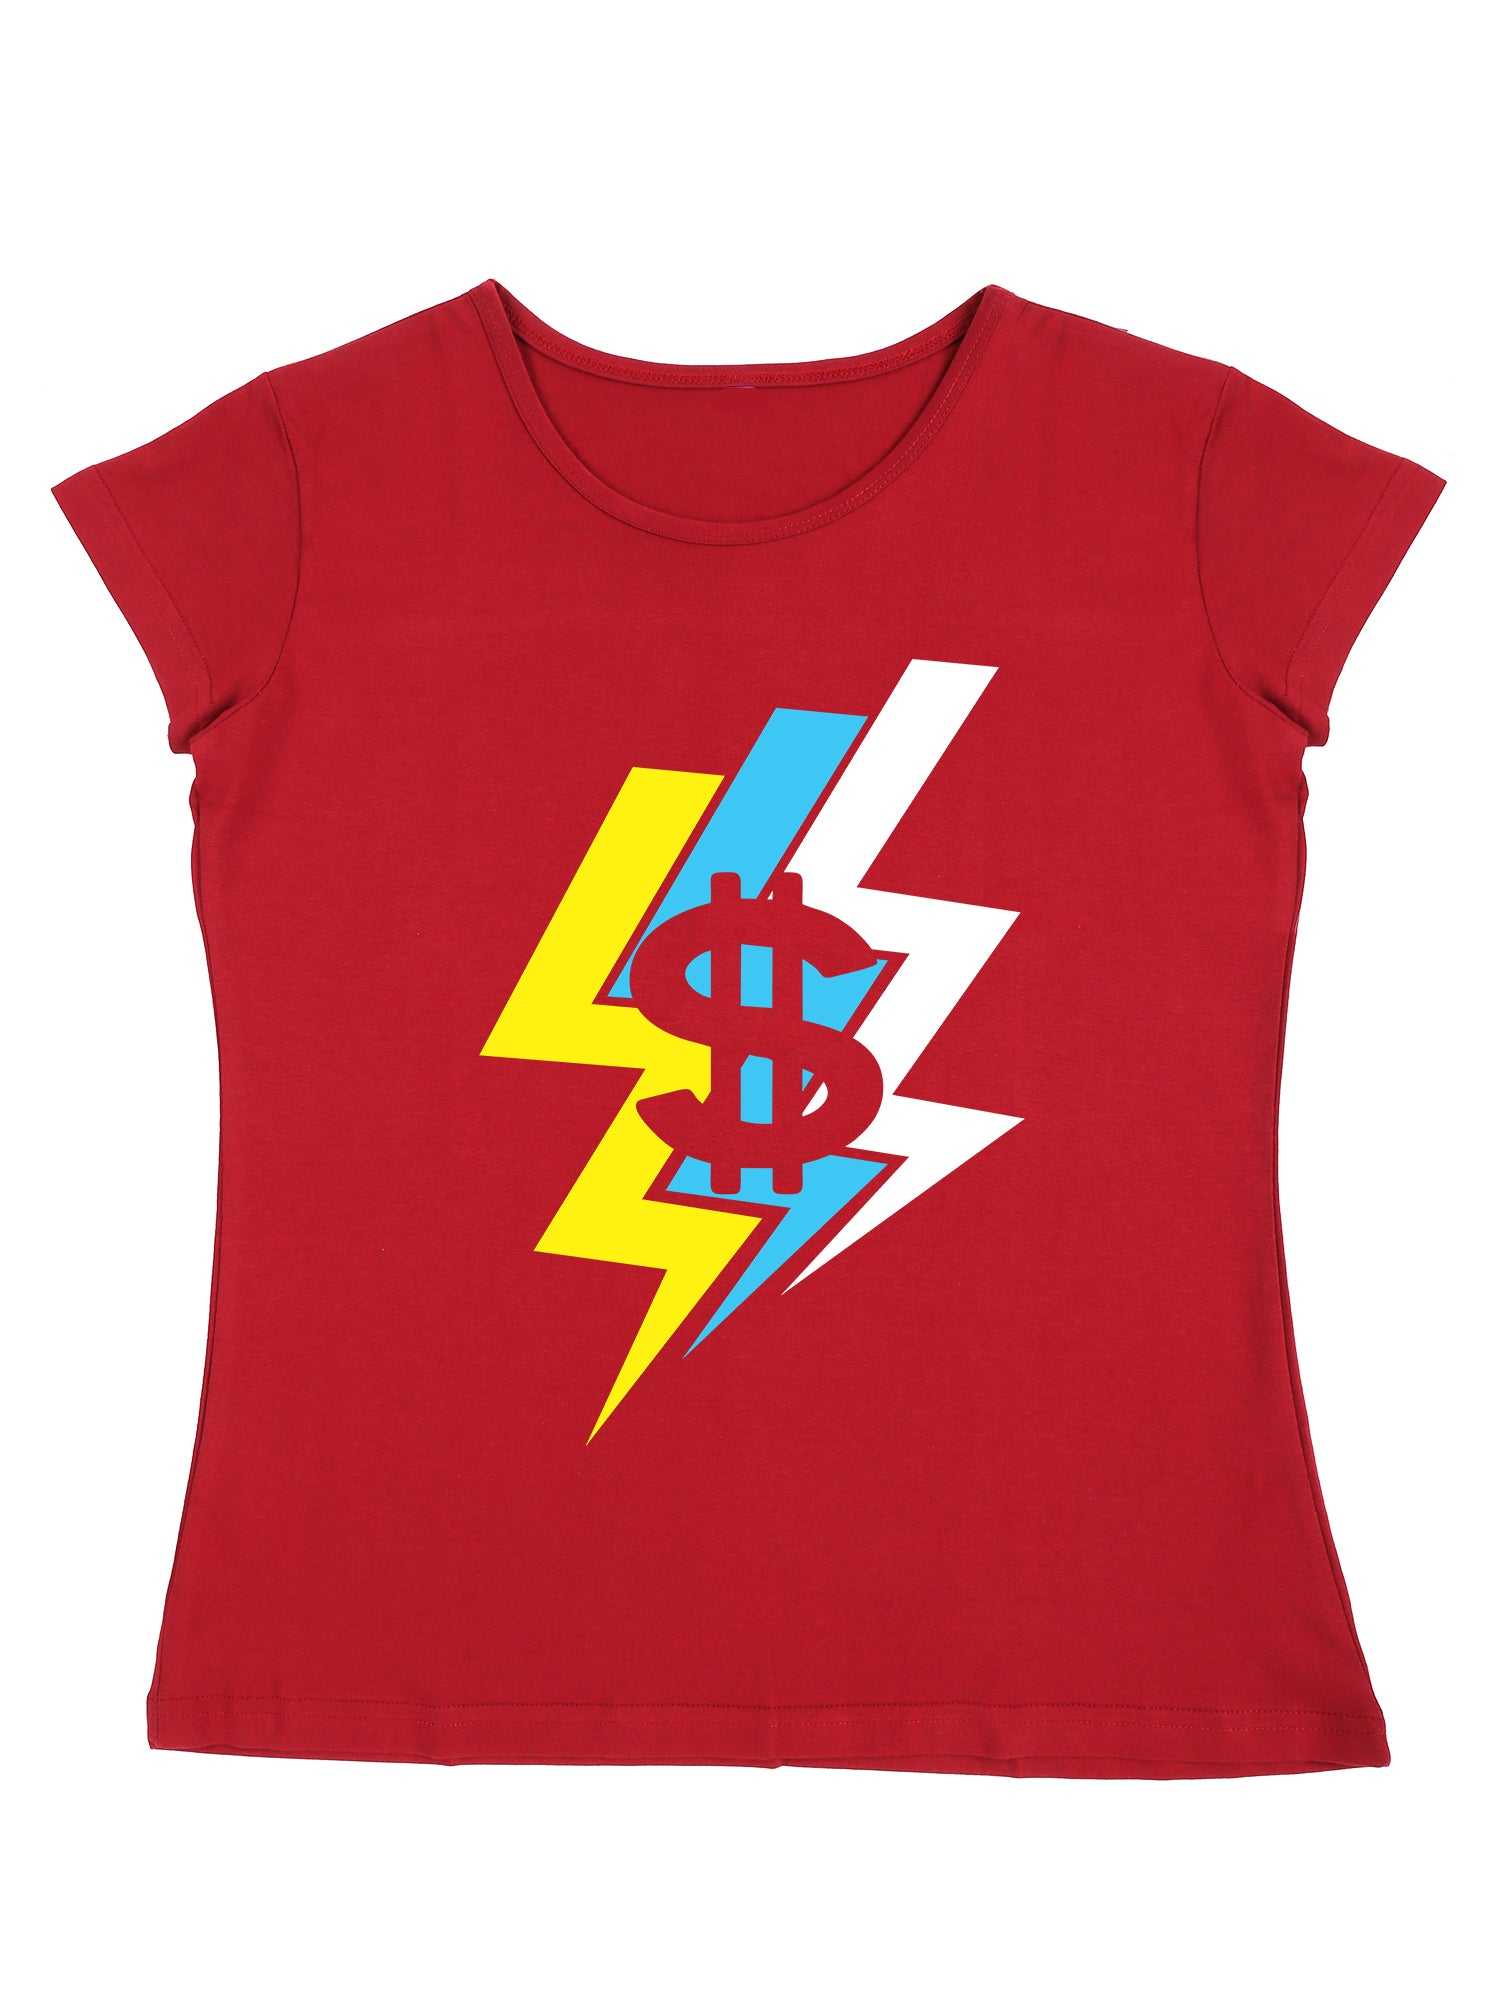 Bueno Life Women's Cotton Printed T-Shirt - Dollar Thunder (Maroon)